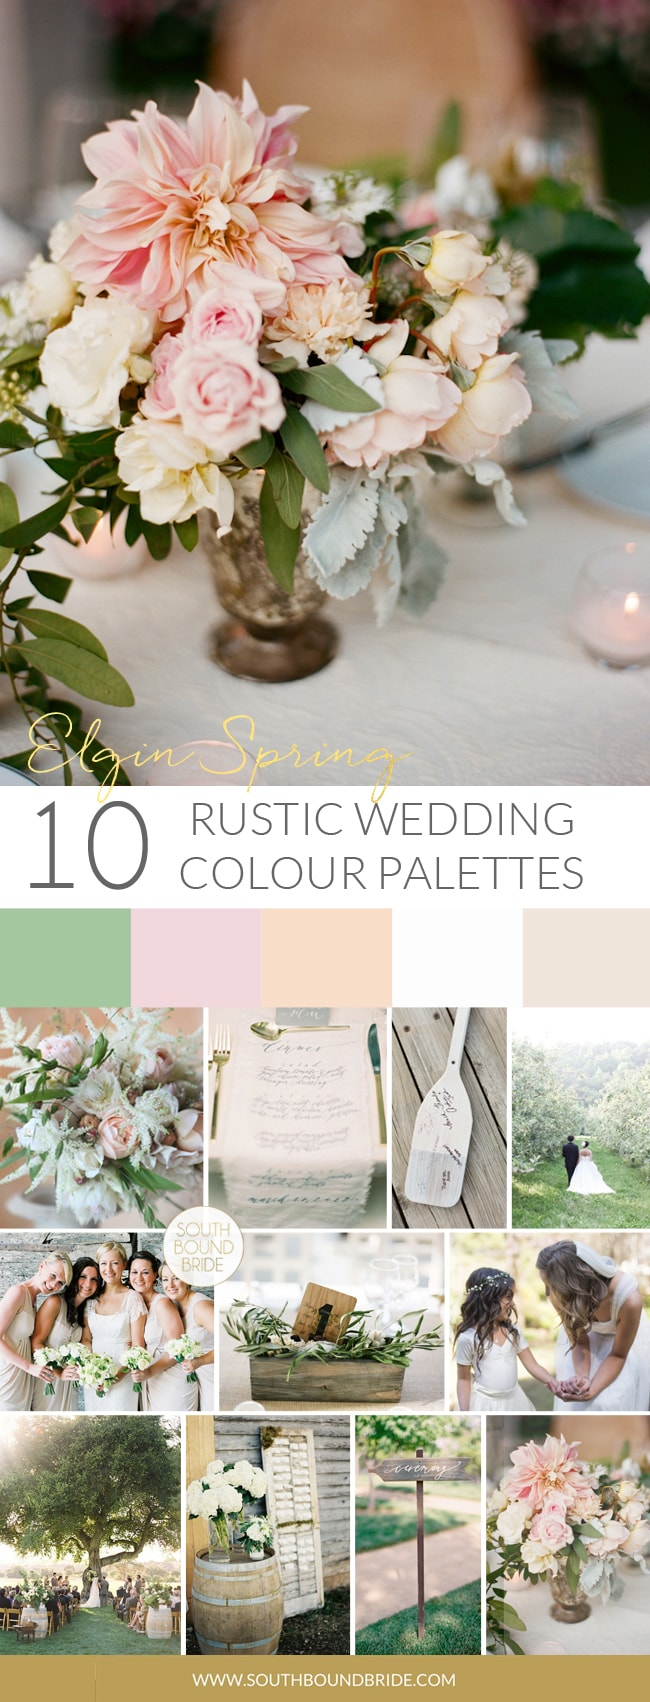 Elgin Spring Rustic Wedding Palette | SouthBound Bride